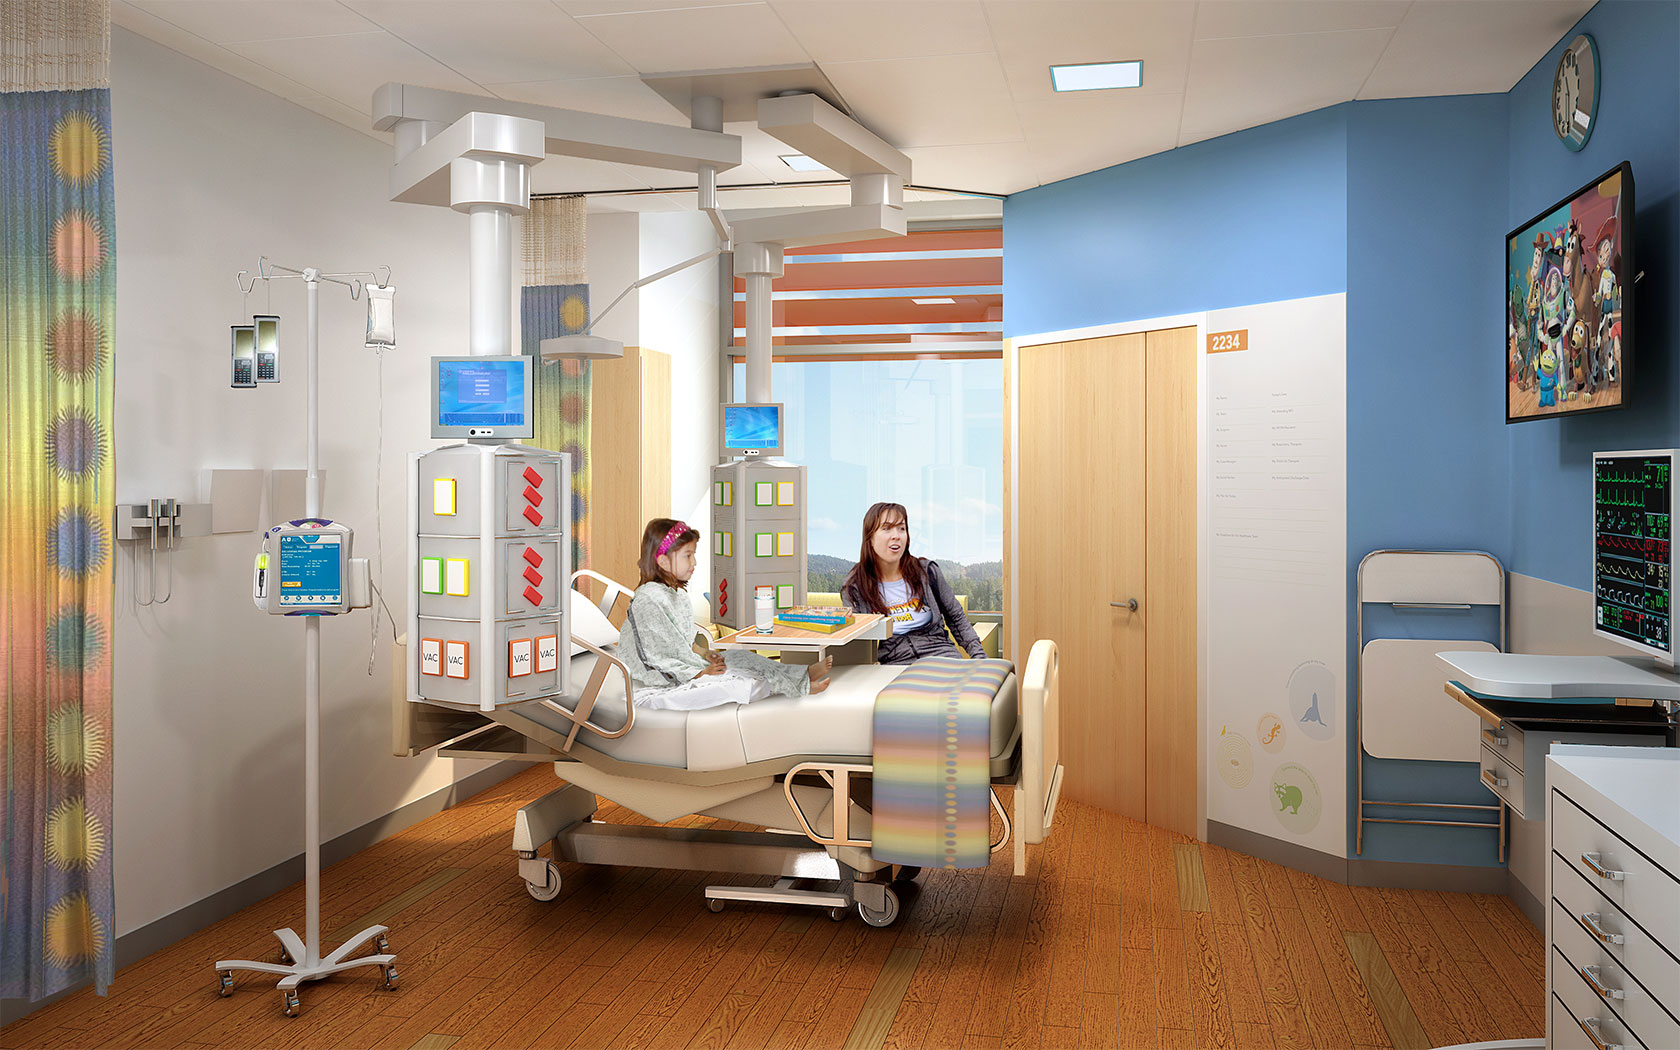 Hospital room with patient and family - The New Lucile Packard Children S Hospital Stanford Palo Alto Calif Is On Track To Open In December When The Facility Plans To Transform The Patient